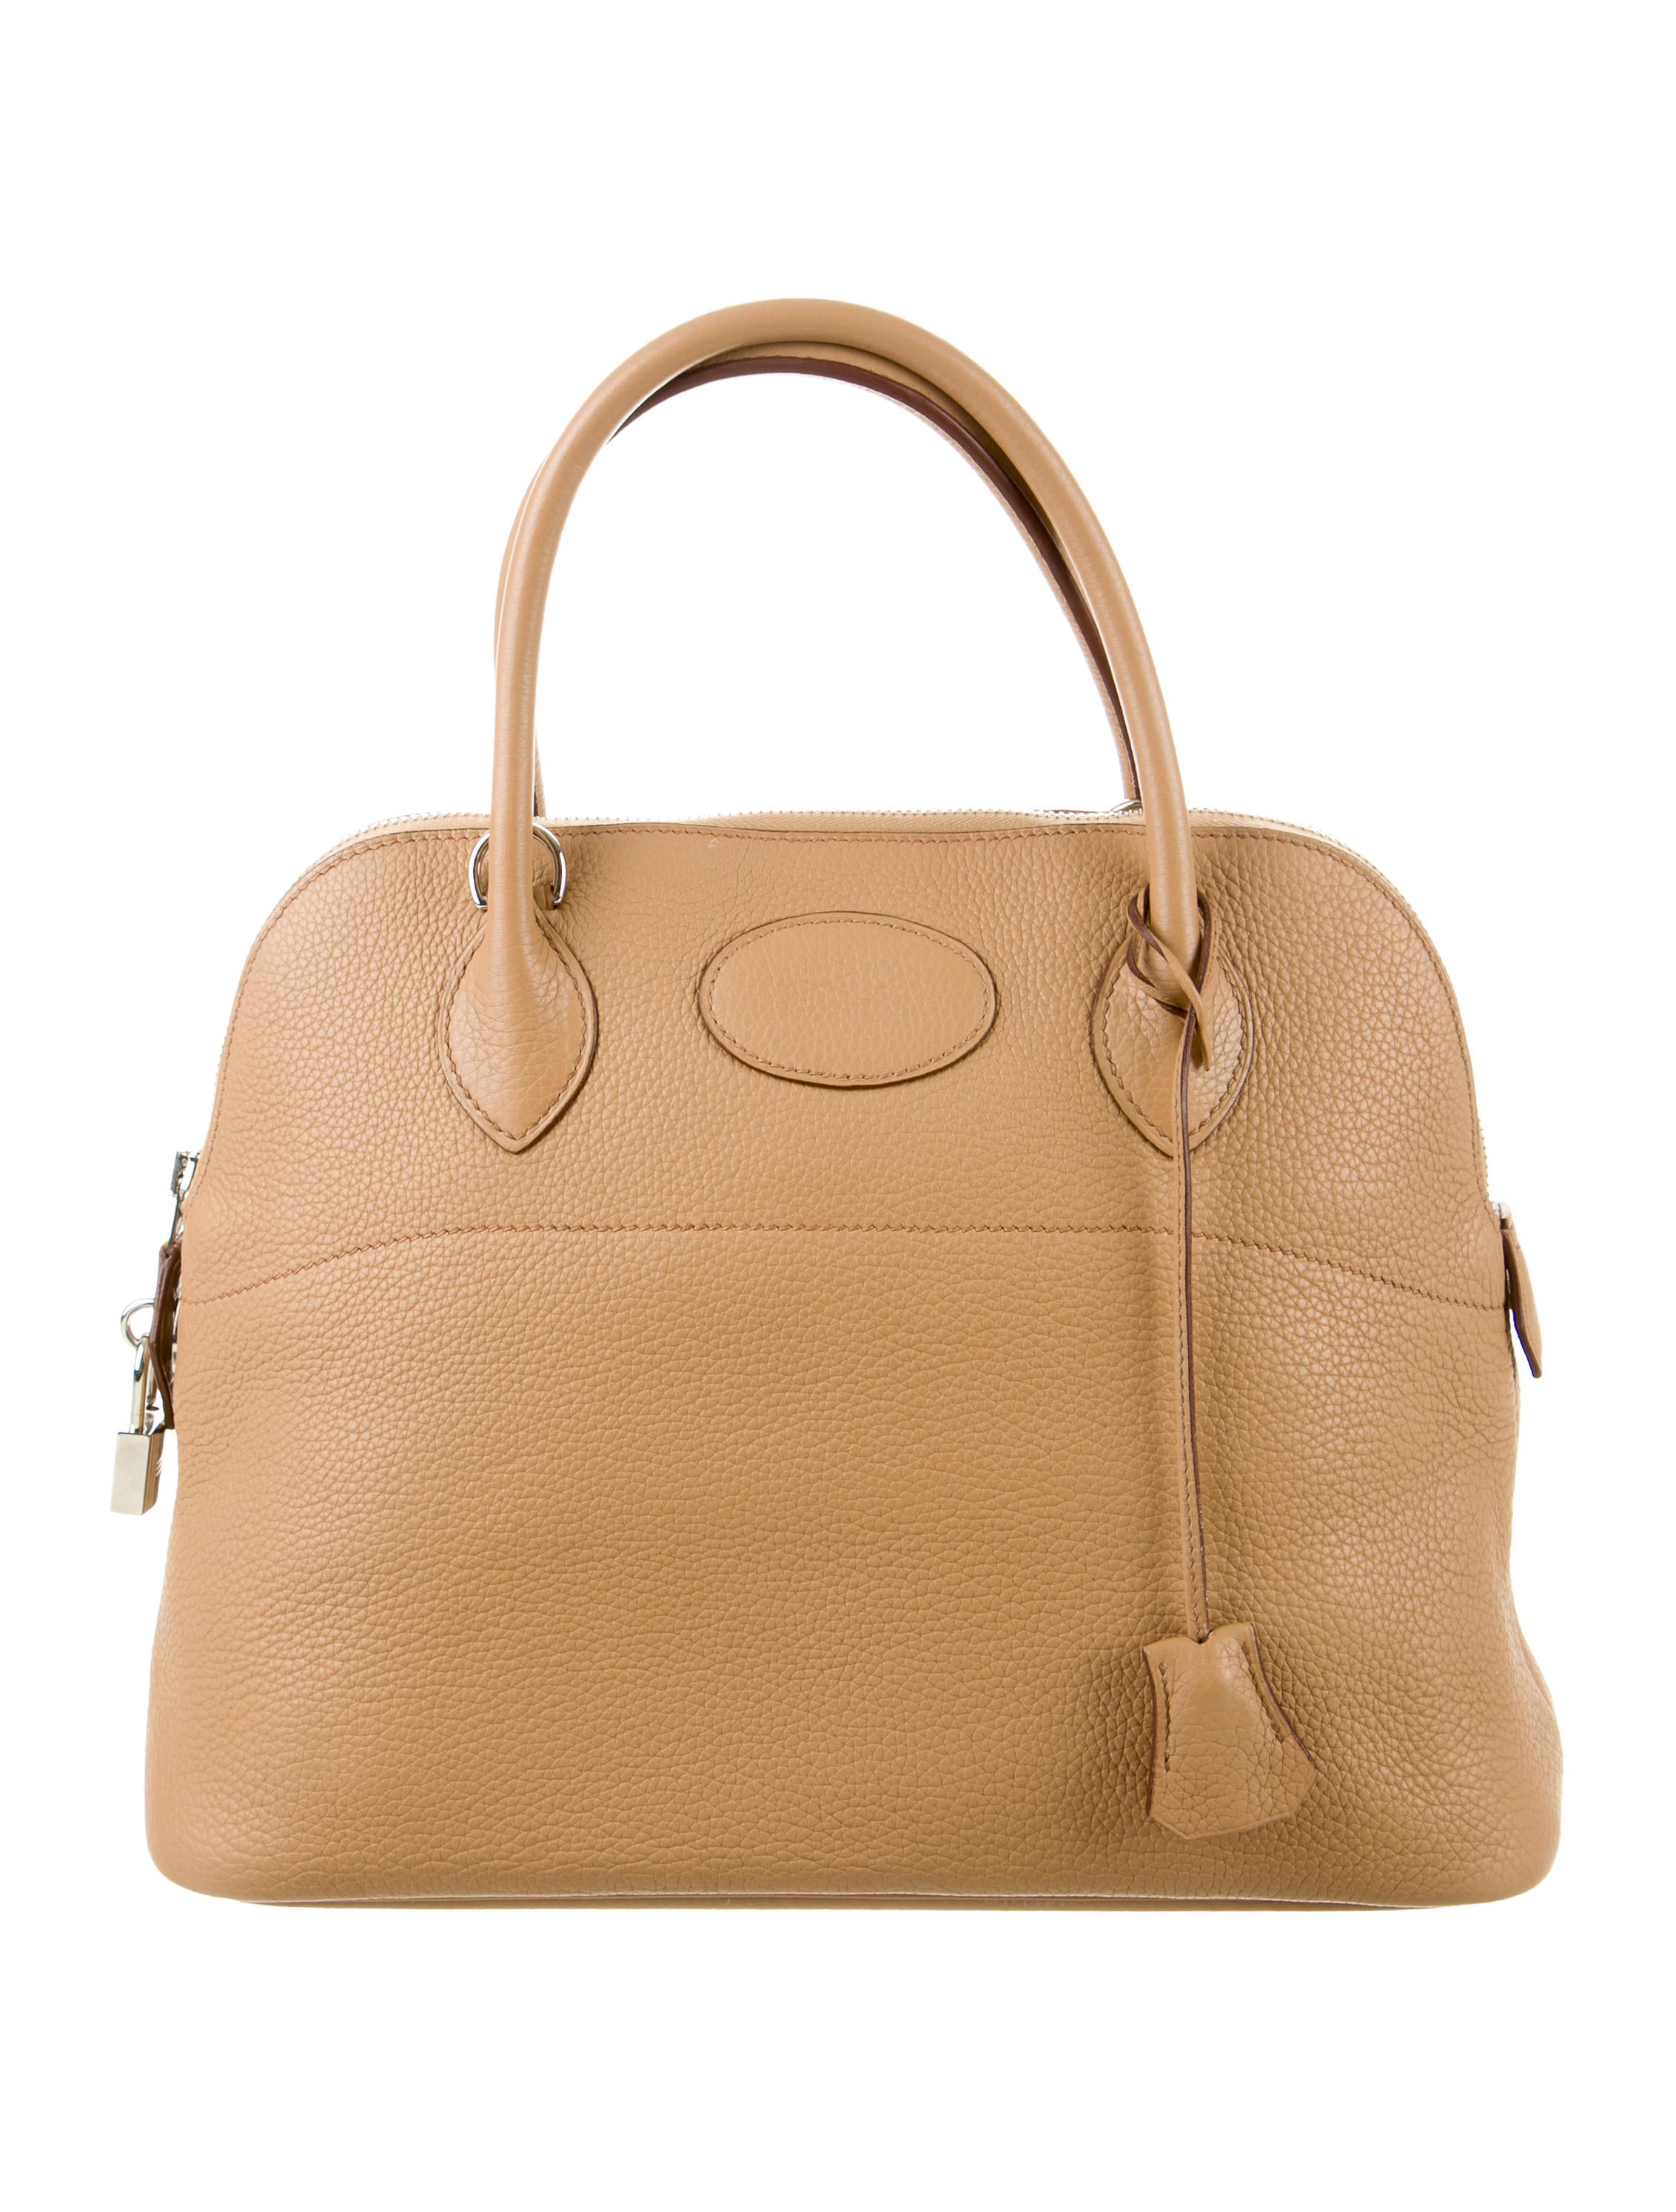 Herm 232 S Clemence Bolide 31 Handbags Her60816 The Realreal